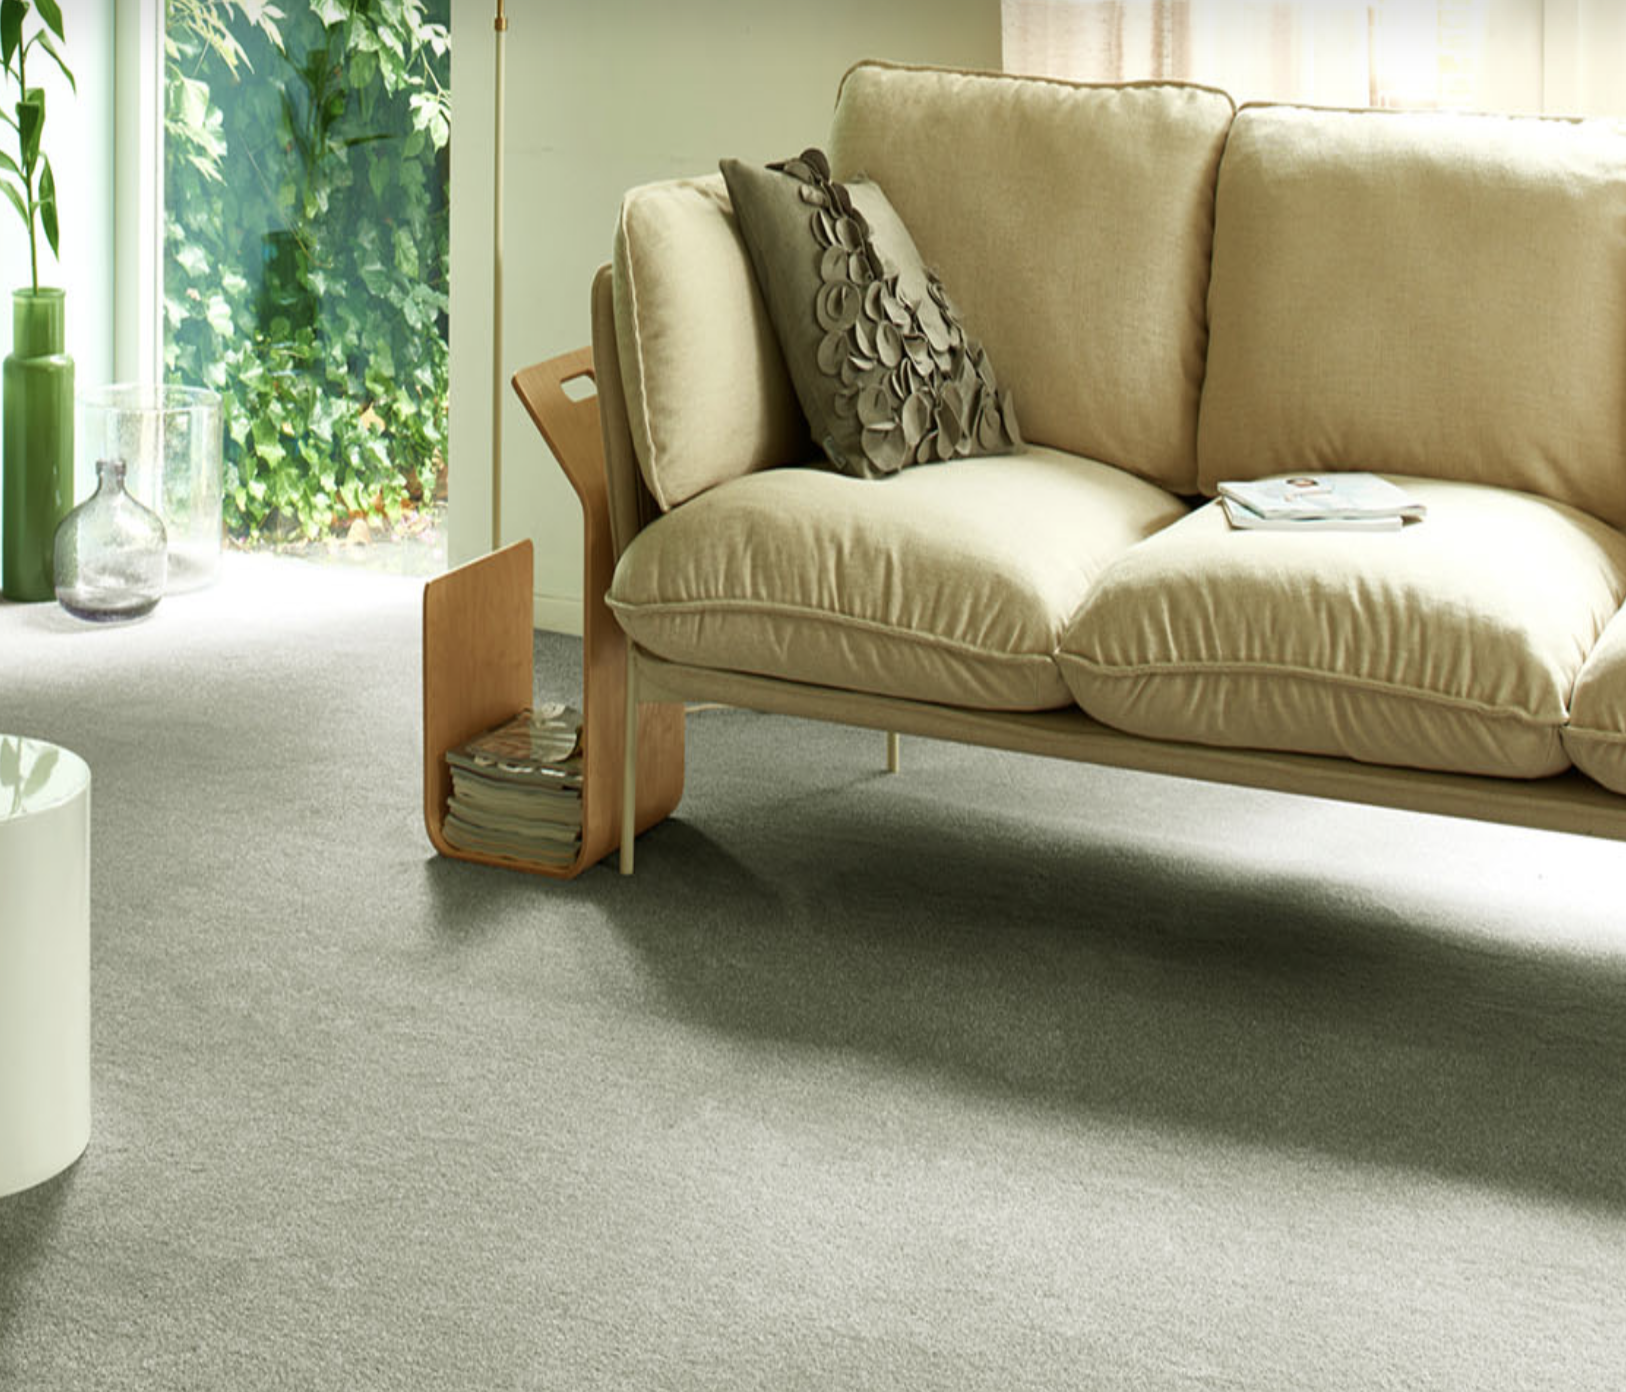 Sedna Carpets offers lovely soft Econyl carpets with a 20 year wear guarantee